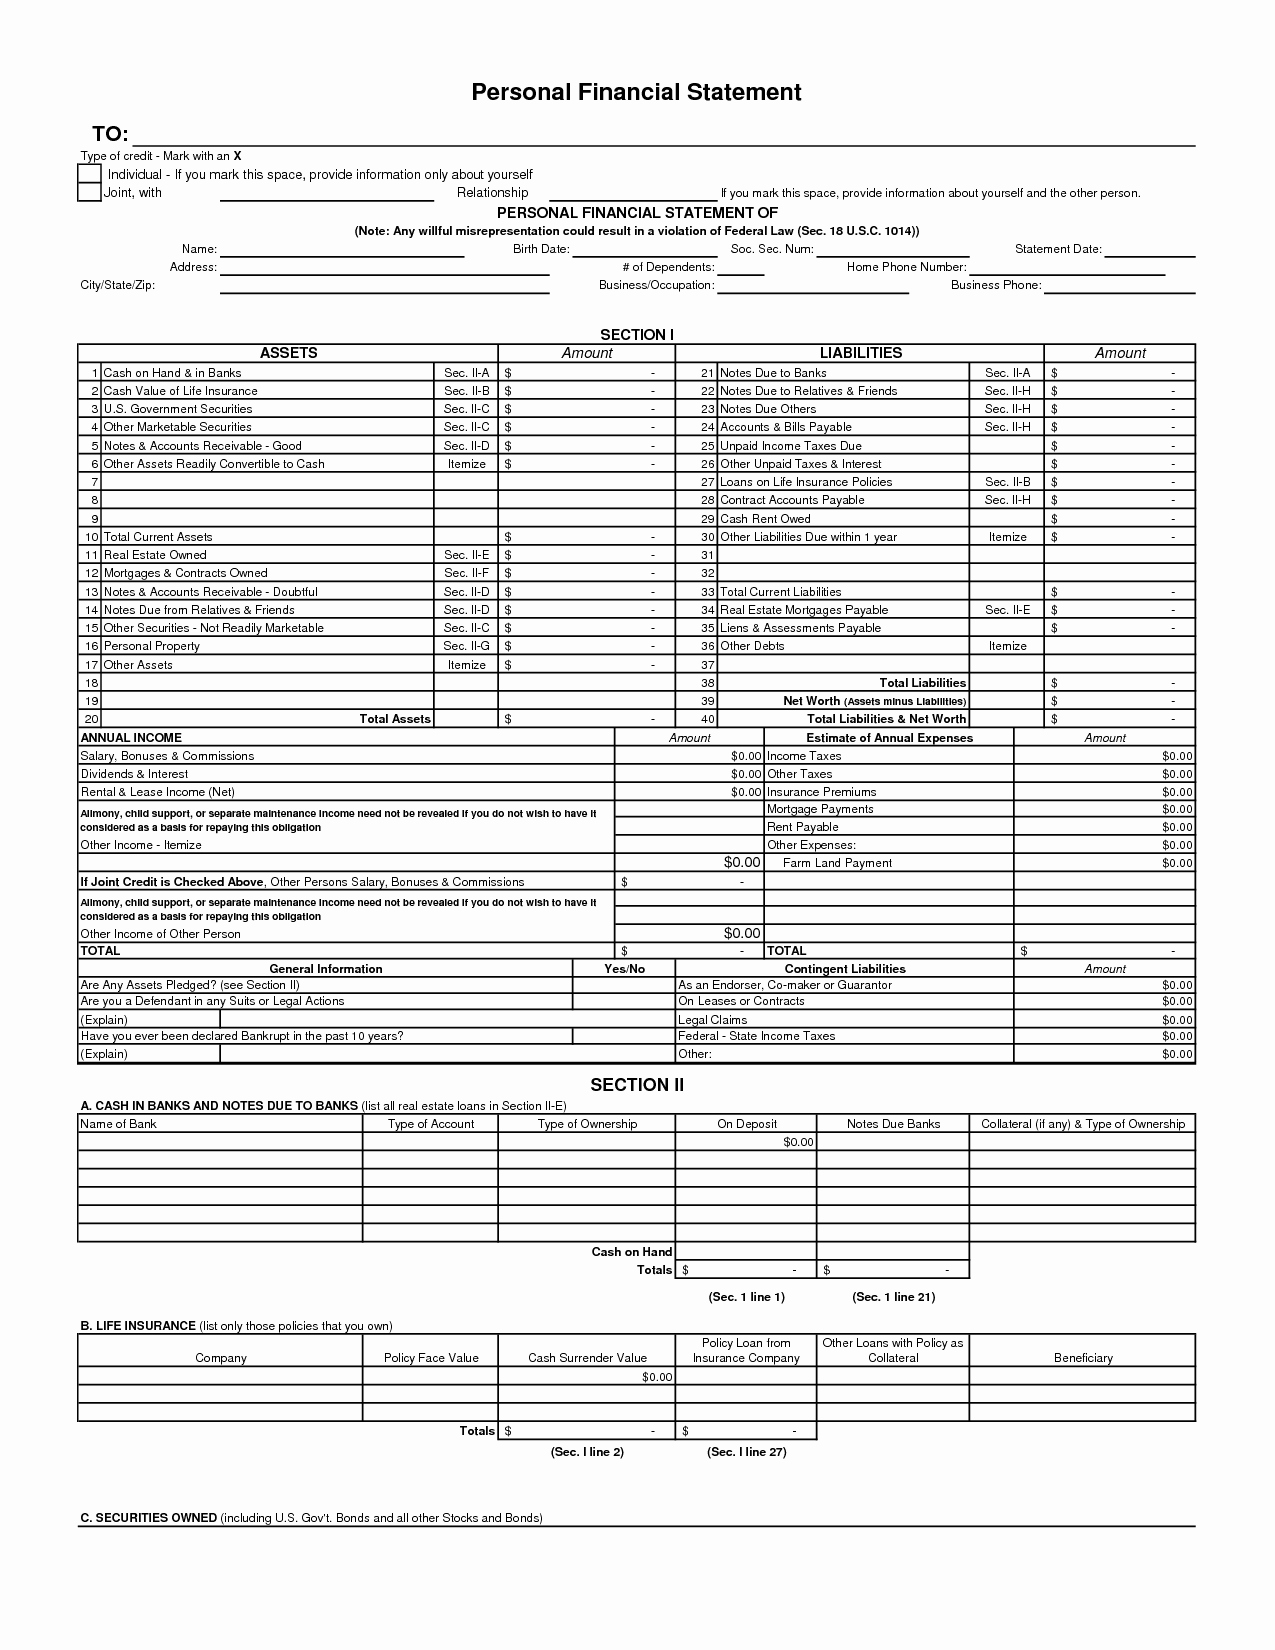 Personal Financial Statement Template Free Elegant Free Template Personal Financial Statement Many Benefits